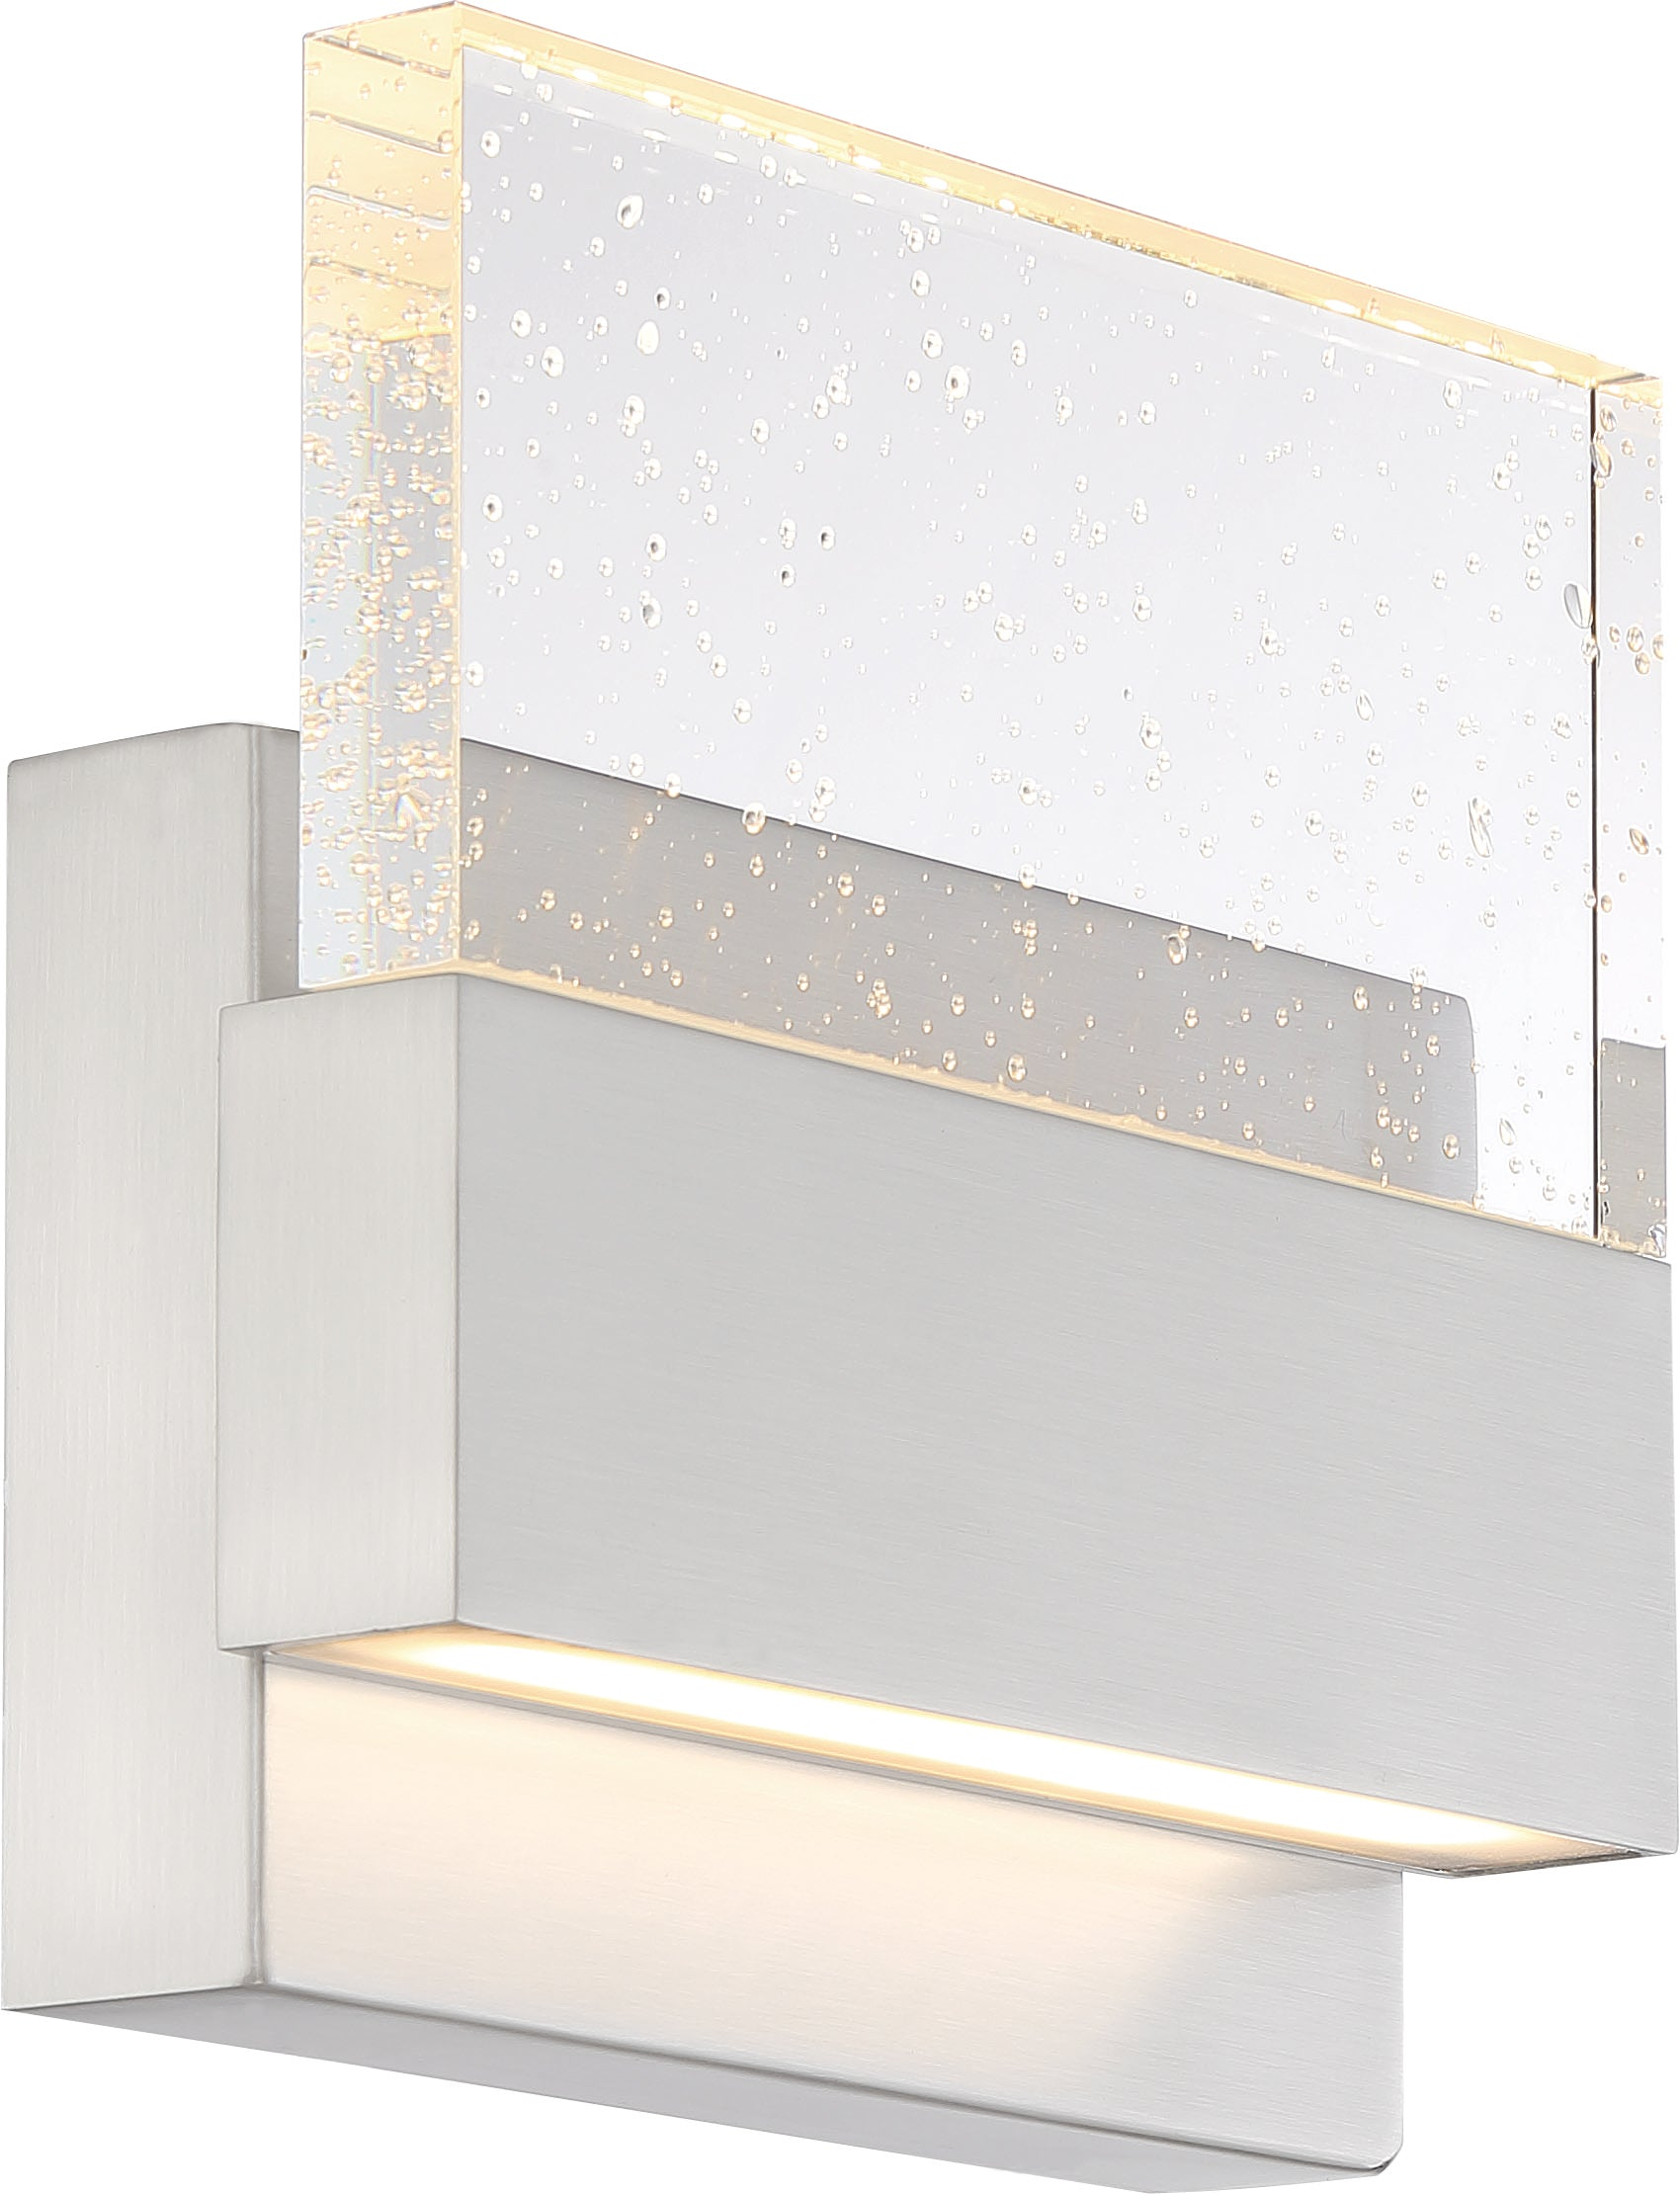 Nuvo Ellusion 15w LED Medium Wall Sconce w/ Seeded Glass in Polished Nickel